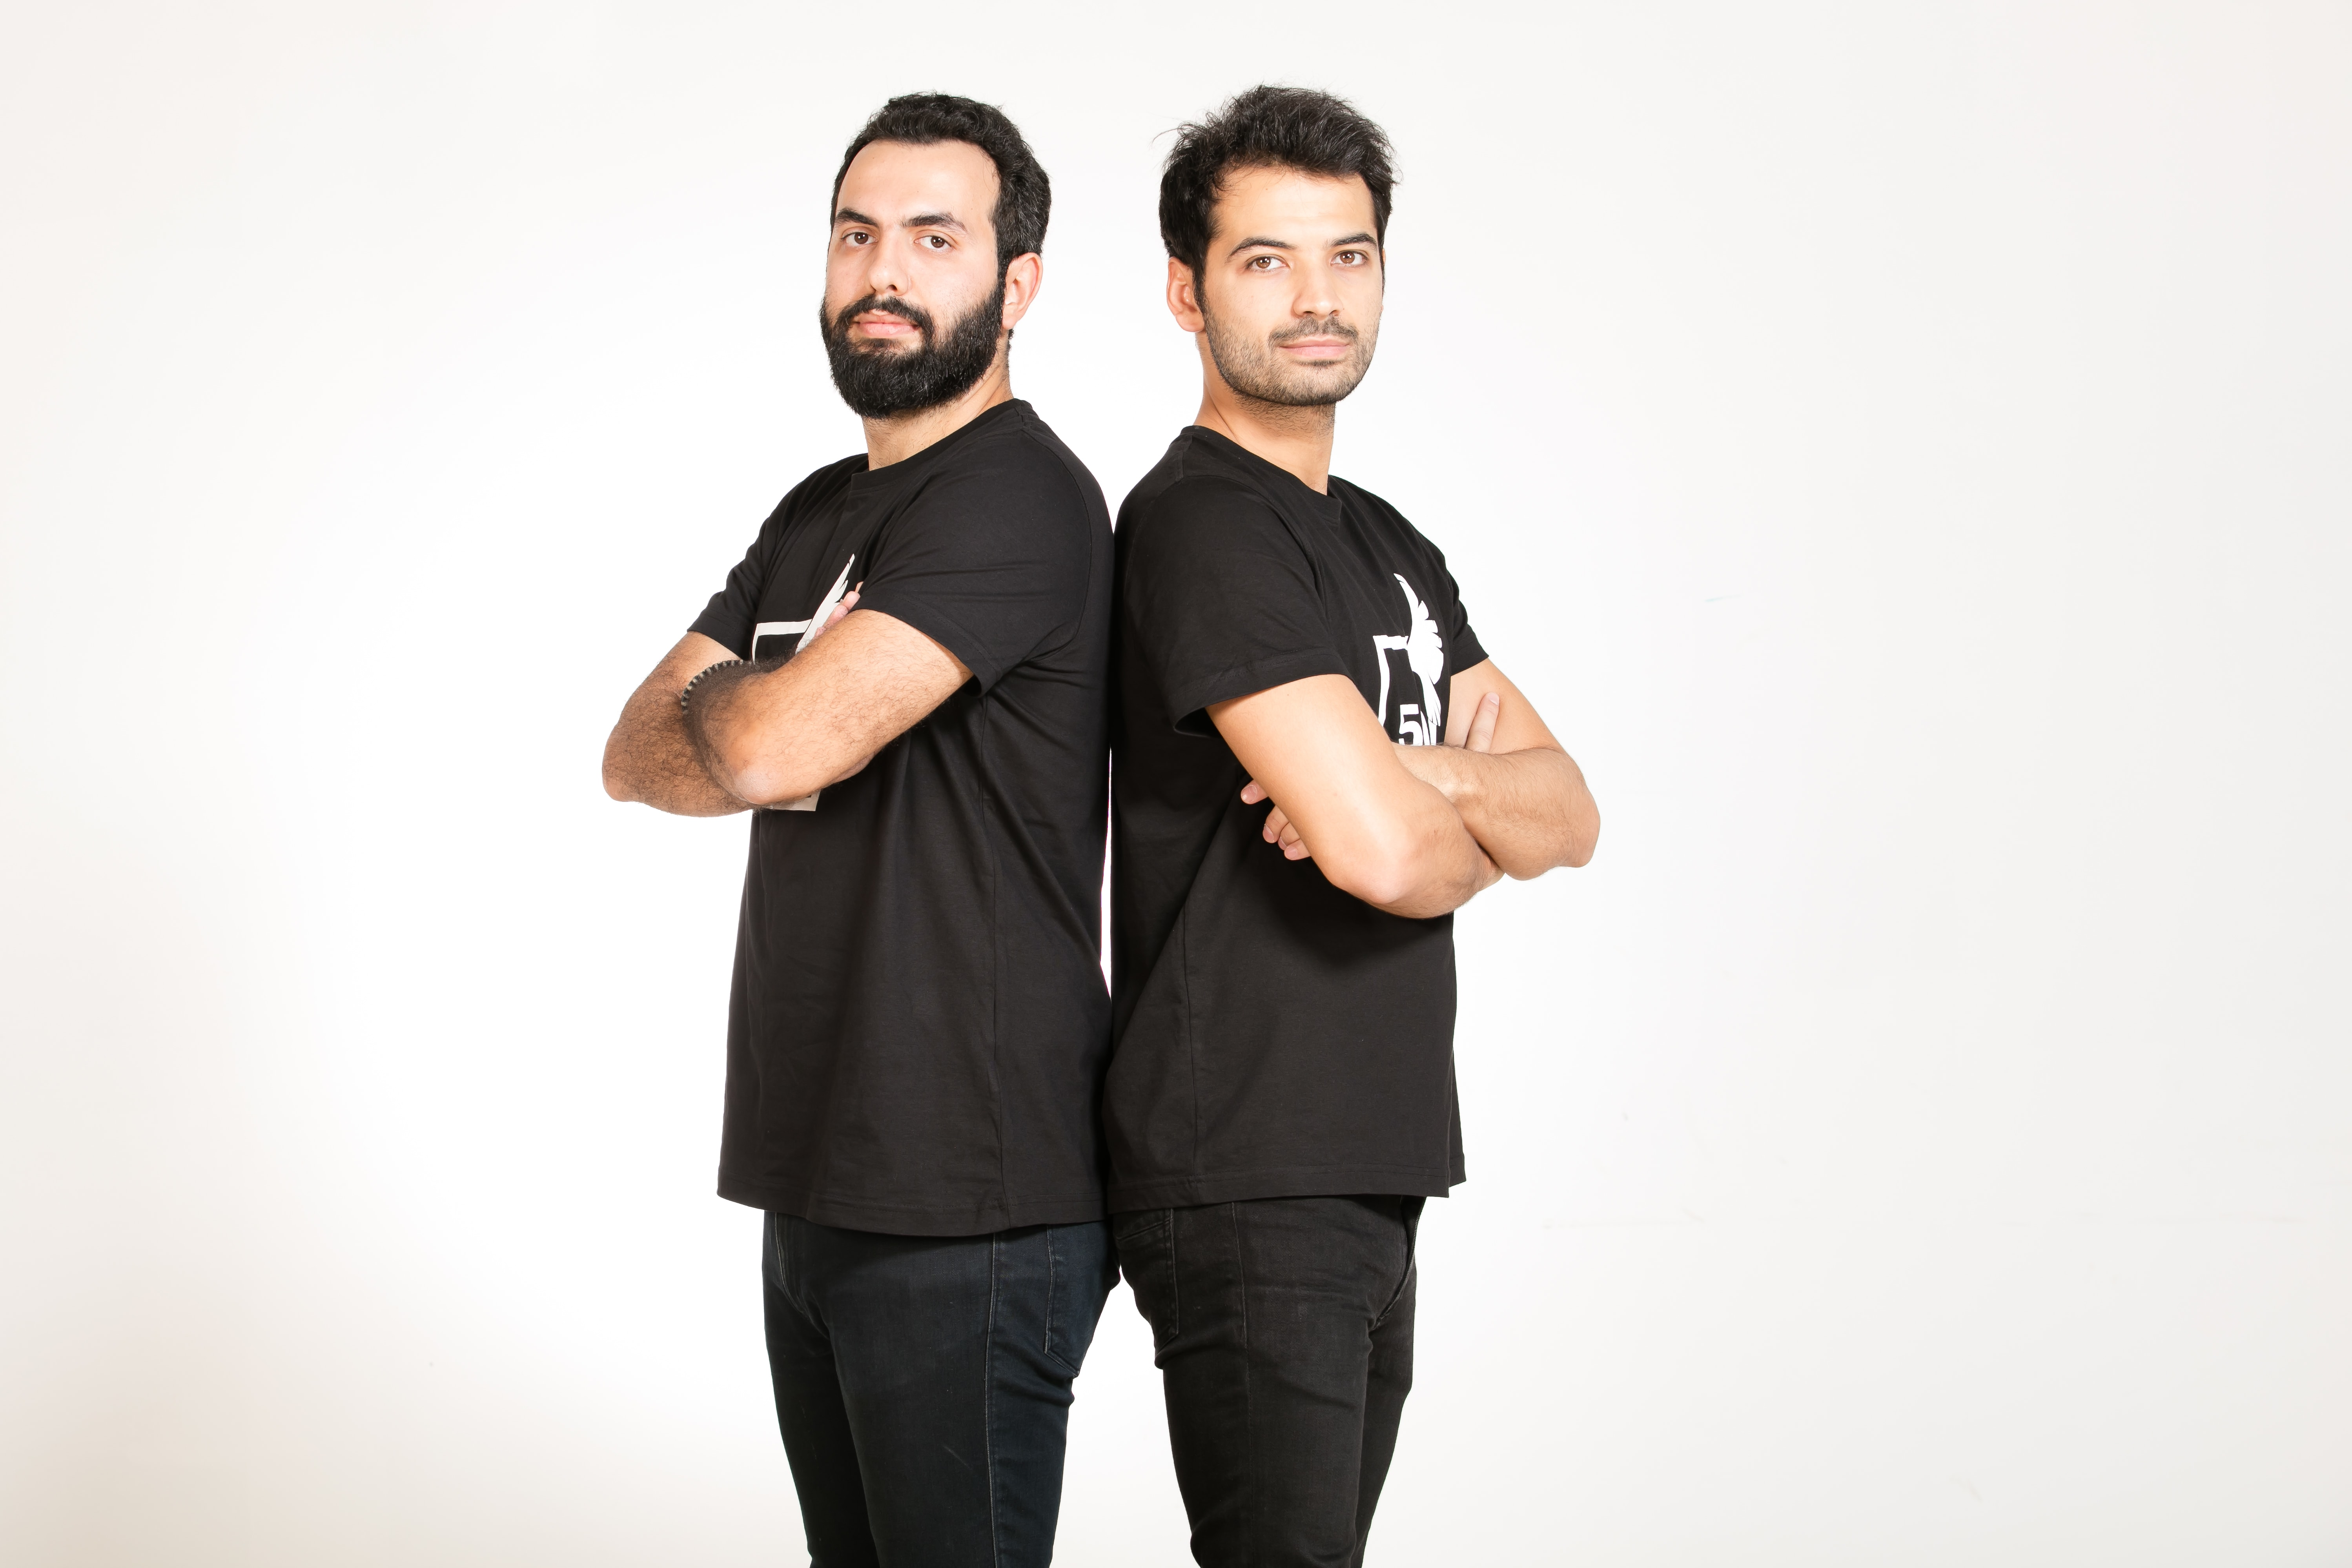 Leading Home Services Marketplace Justmop.com Expands into Kuwait